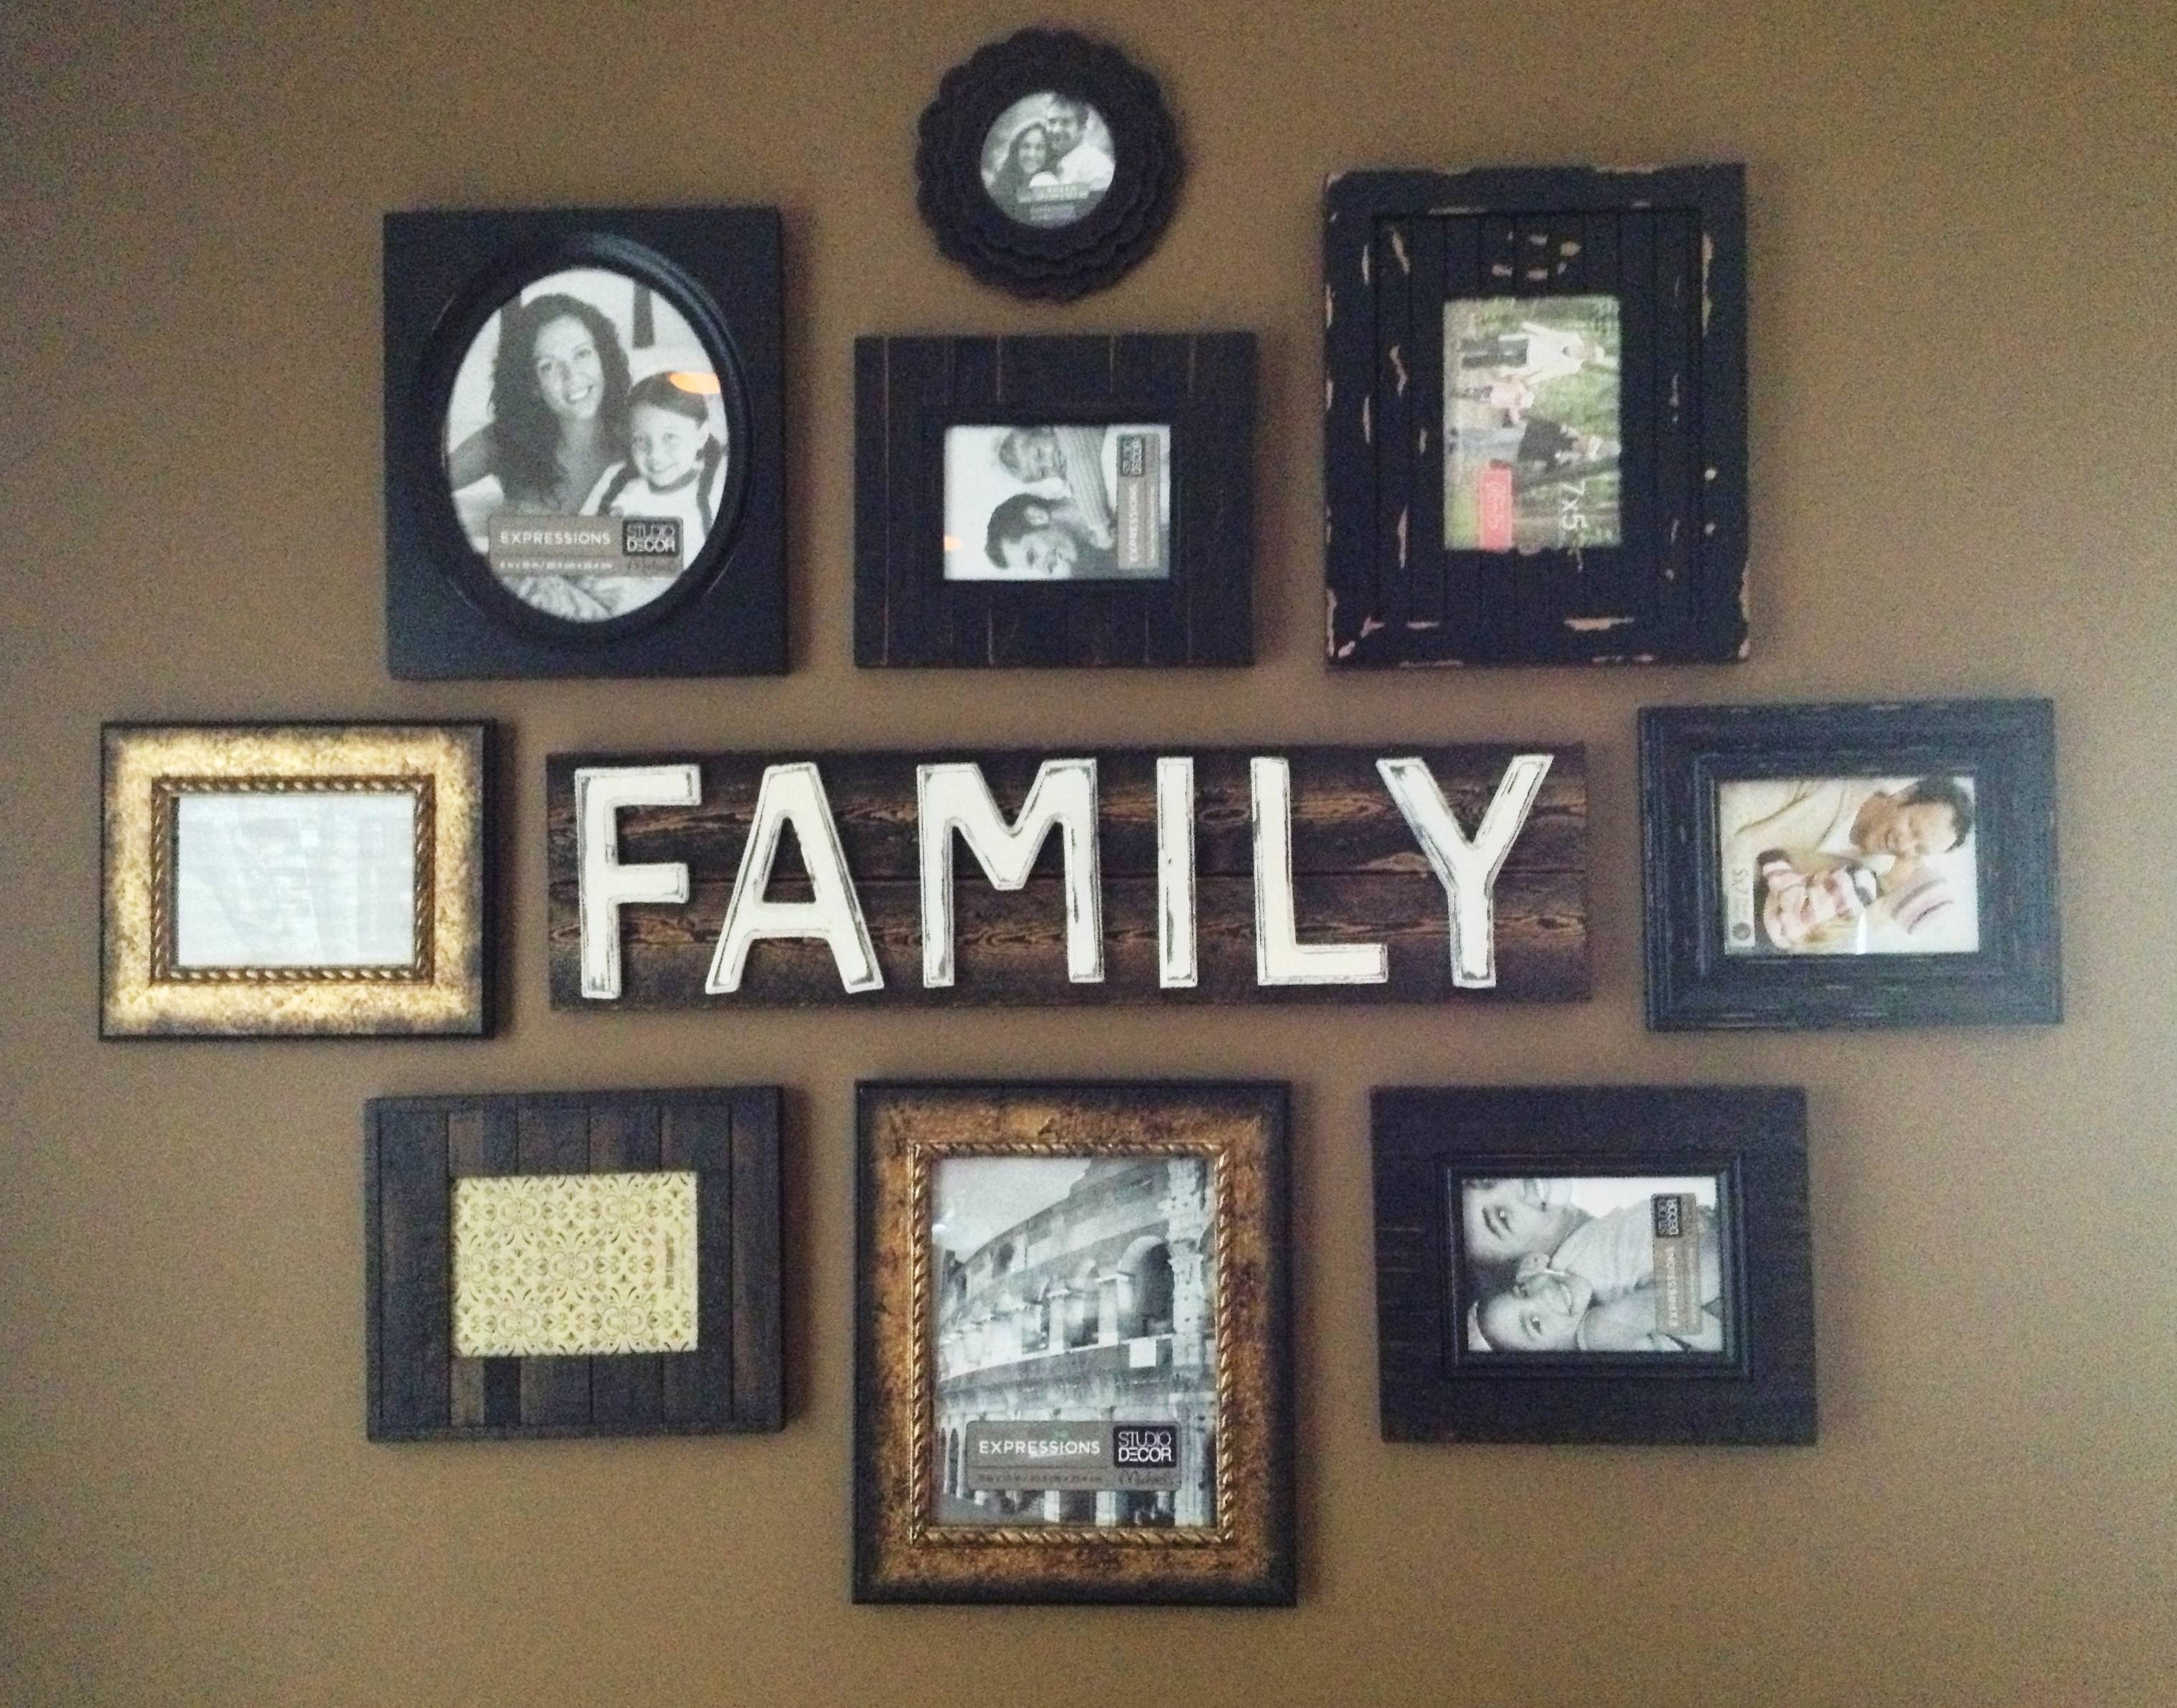 Family Wall Art Picture Frames | Wallartideas With Regard To Best And Newest Family Photo Wall Art (View 3 of 25)